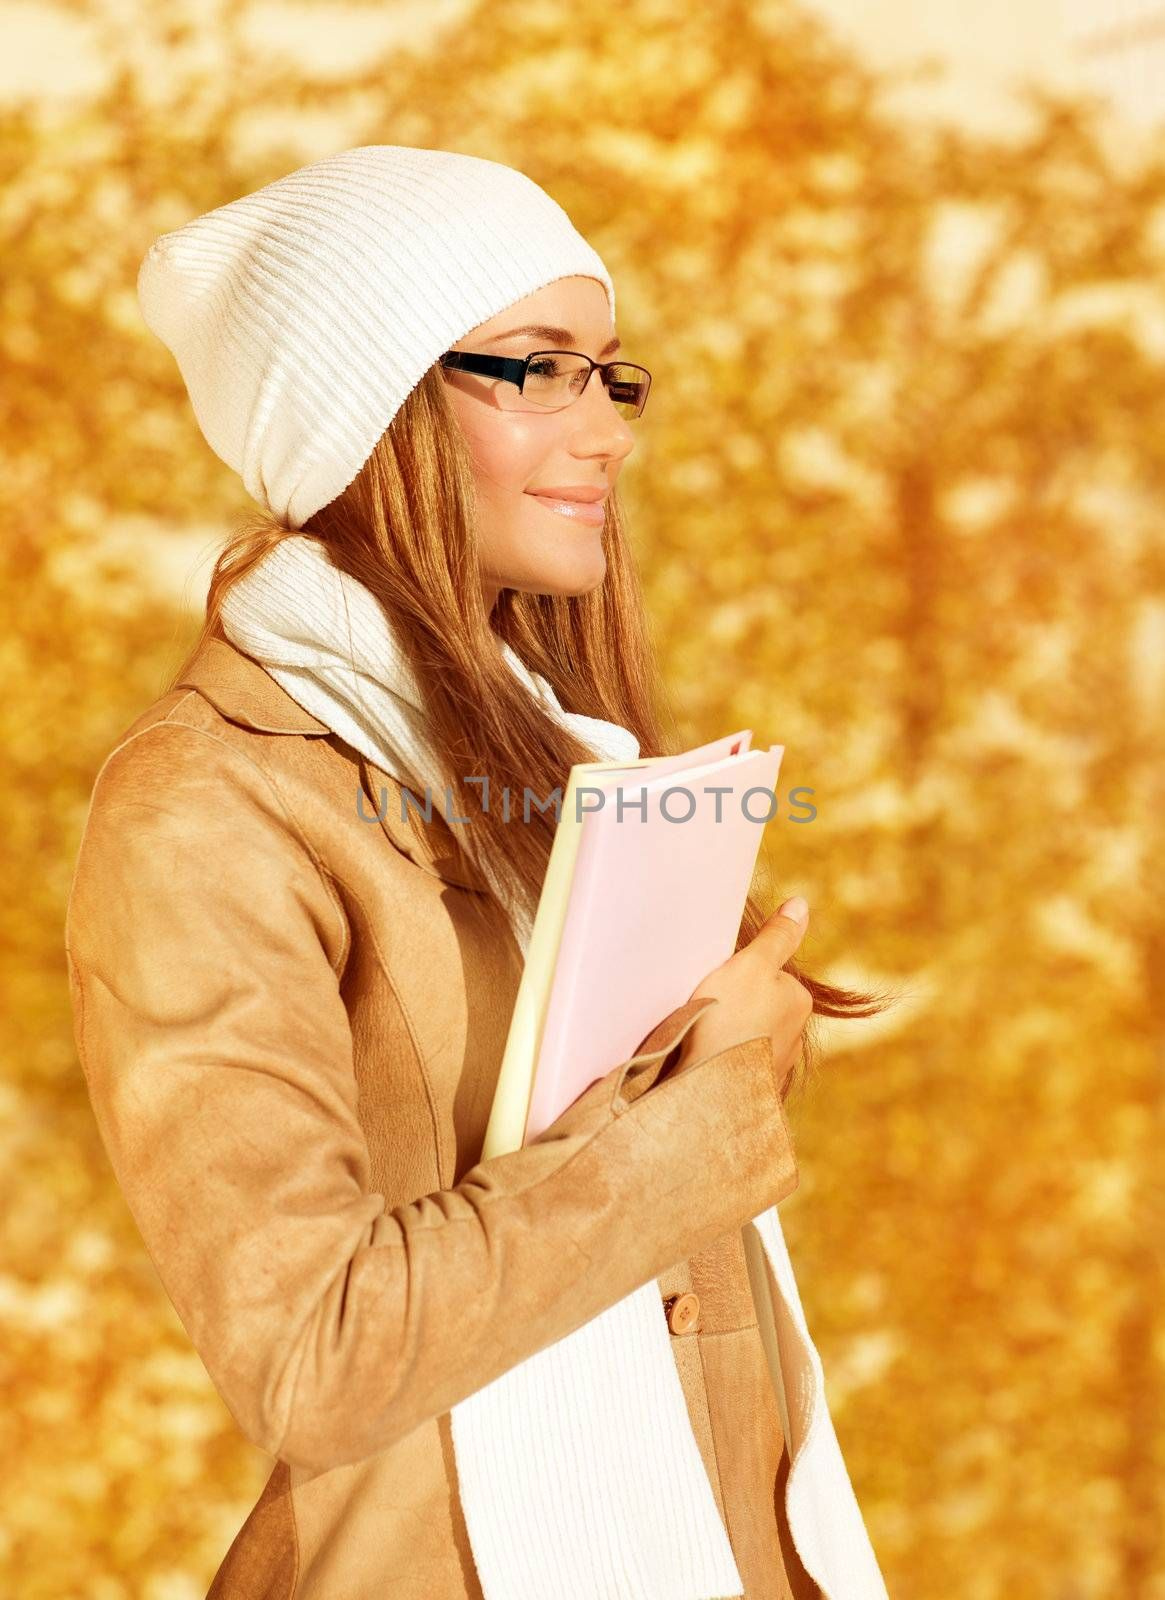 Photo of pretty student girl standing in autumn park and holding books in hands, young businesswoman on golden foliage background, smiling teenager enjoying education time, fall season